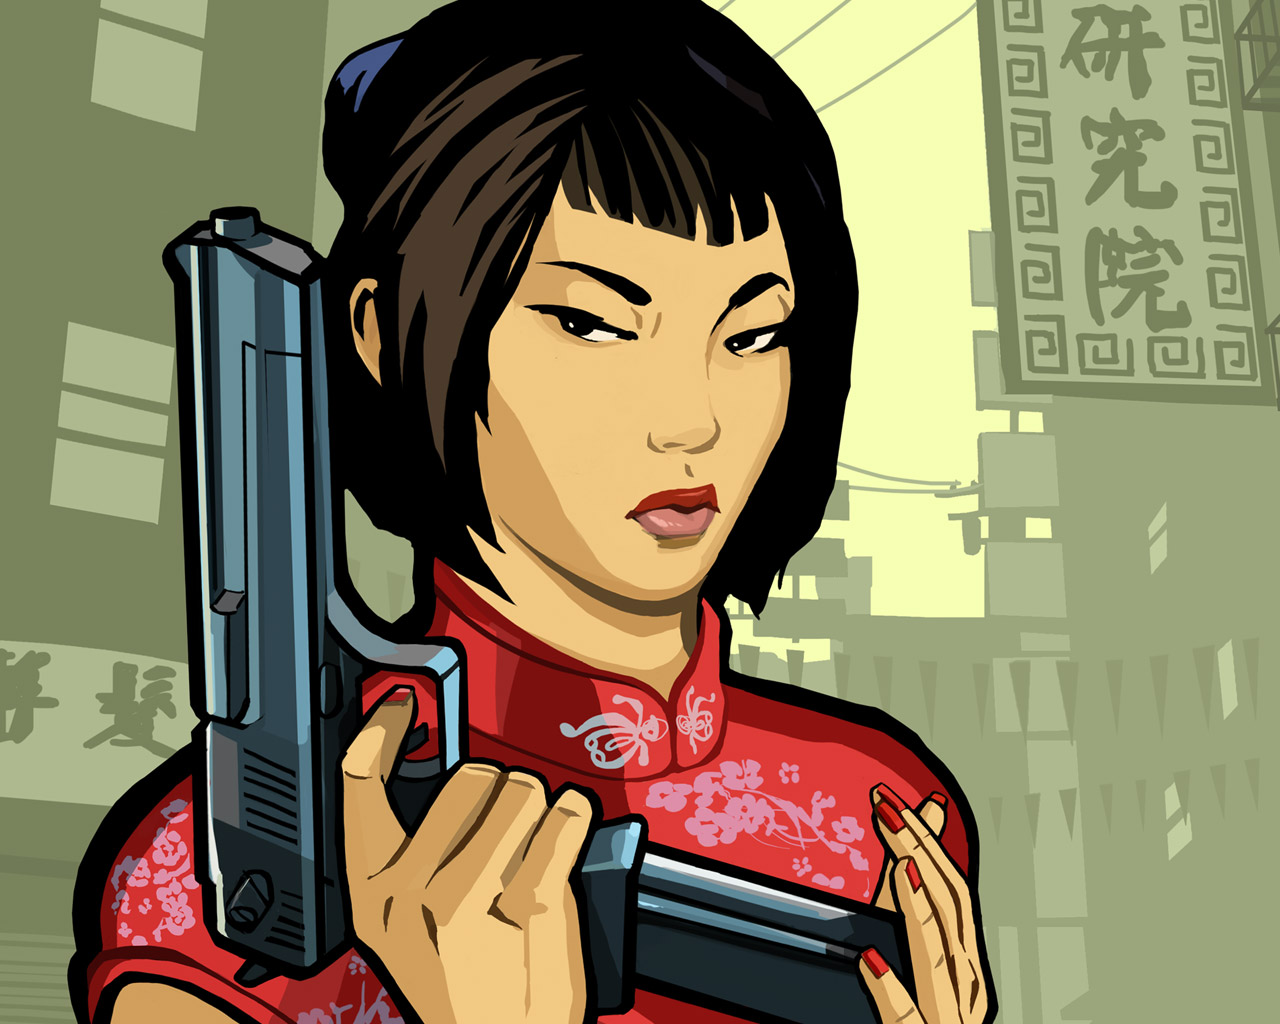 Free Grand Theft Auto: Chinatown Wars Wallpaper in 1280x1024